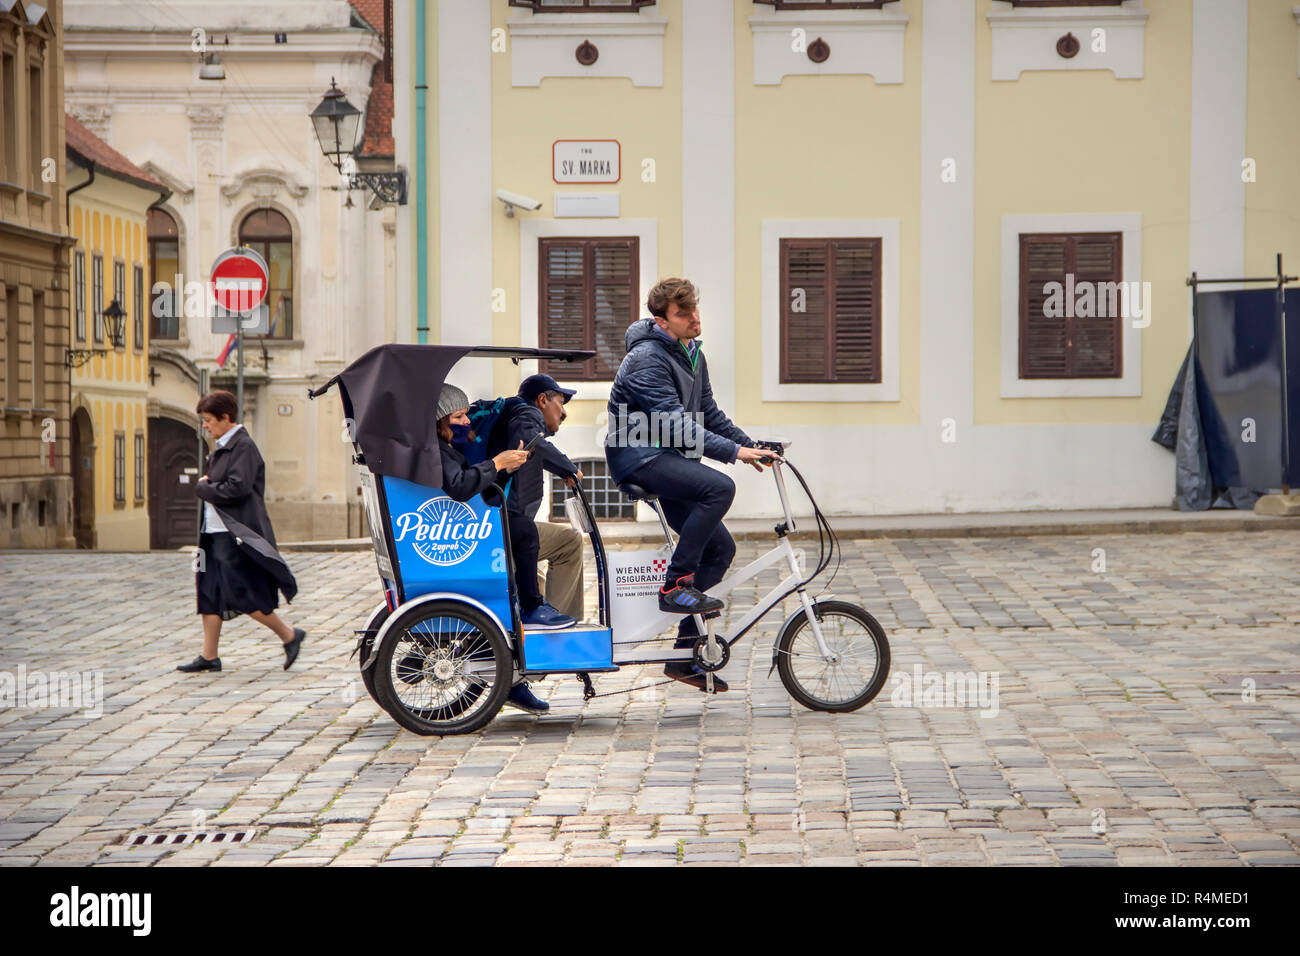 Powered Tricycle Stock Photos & Powered Tricycle Stock Images - Alamy